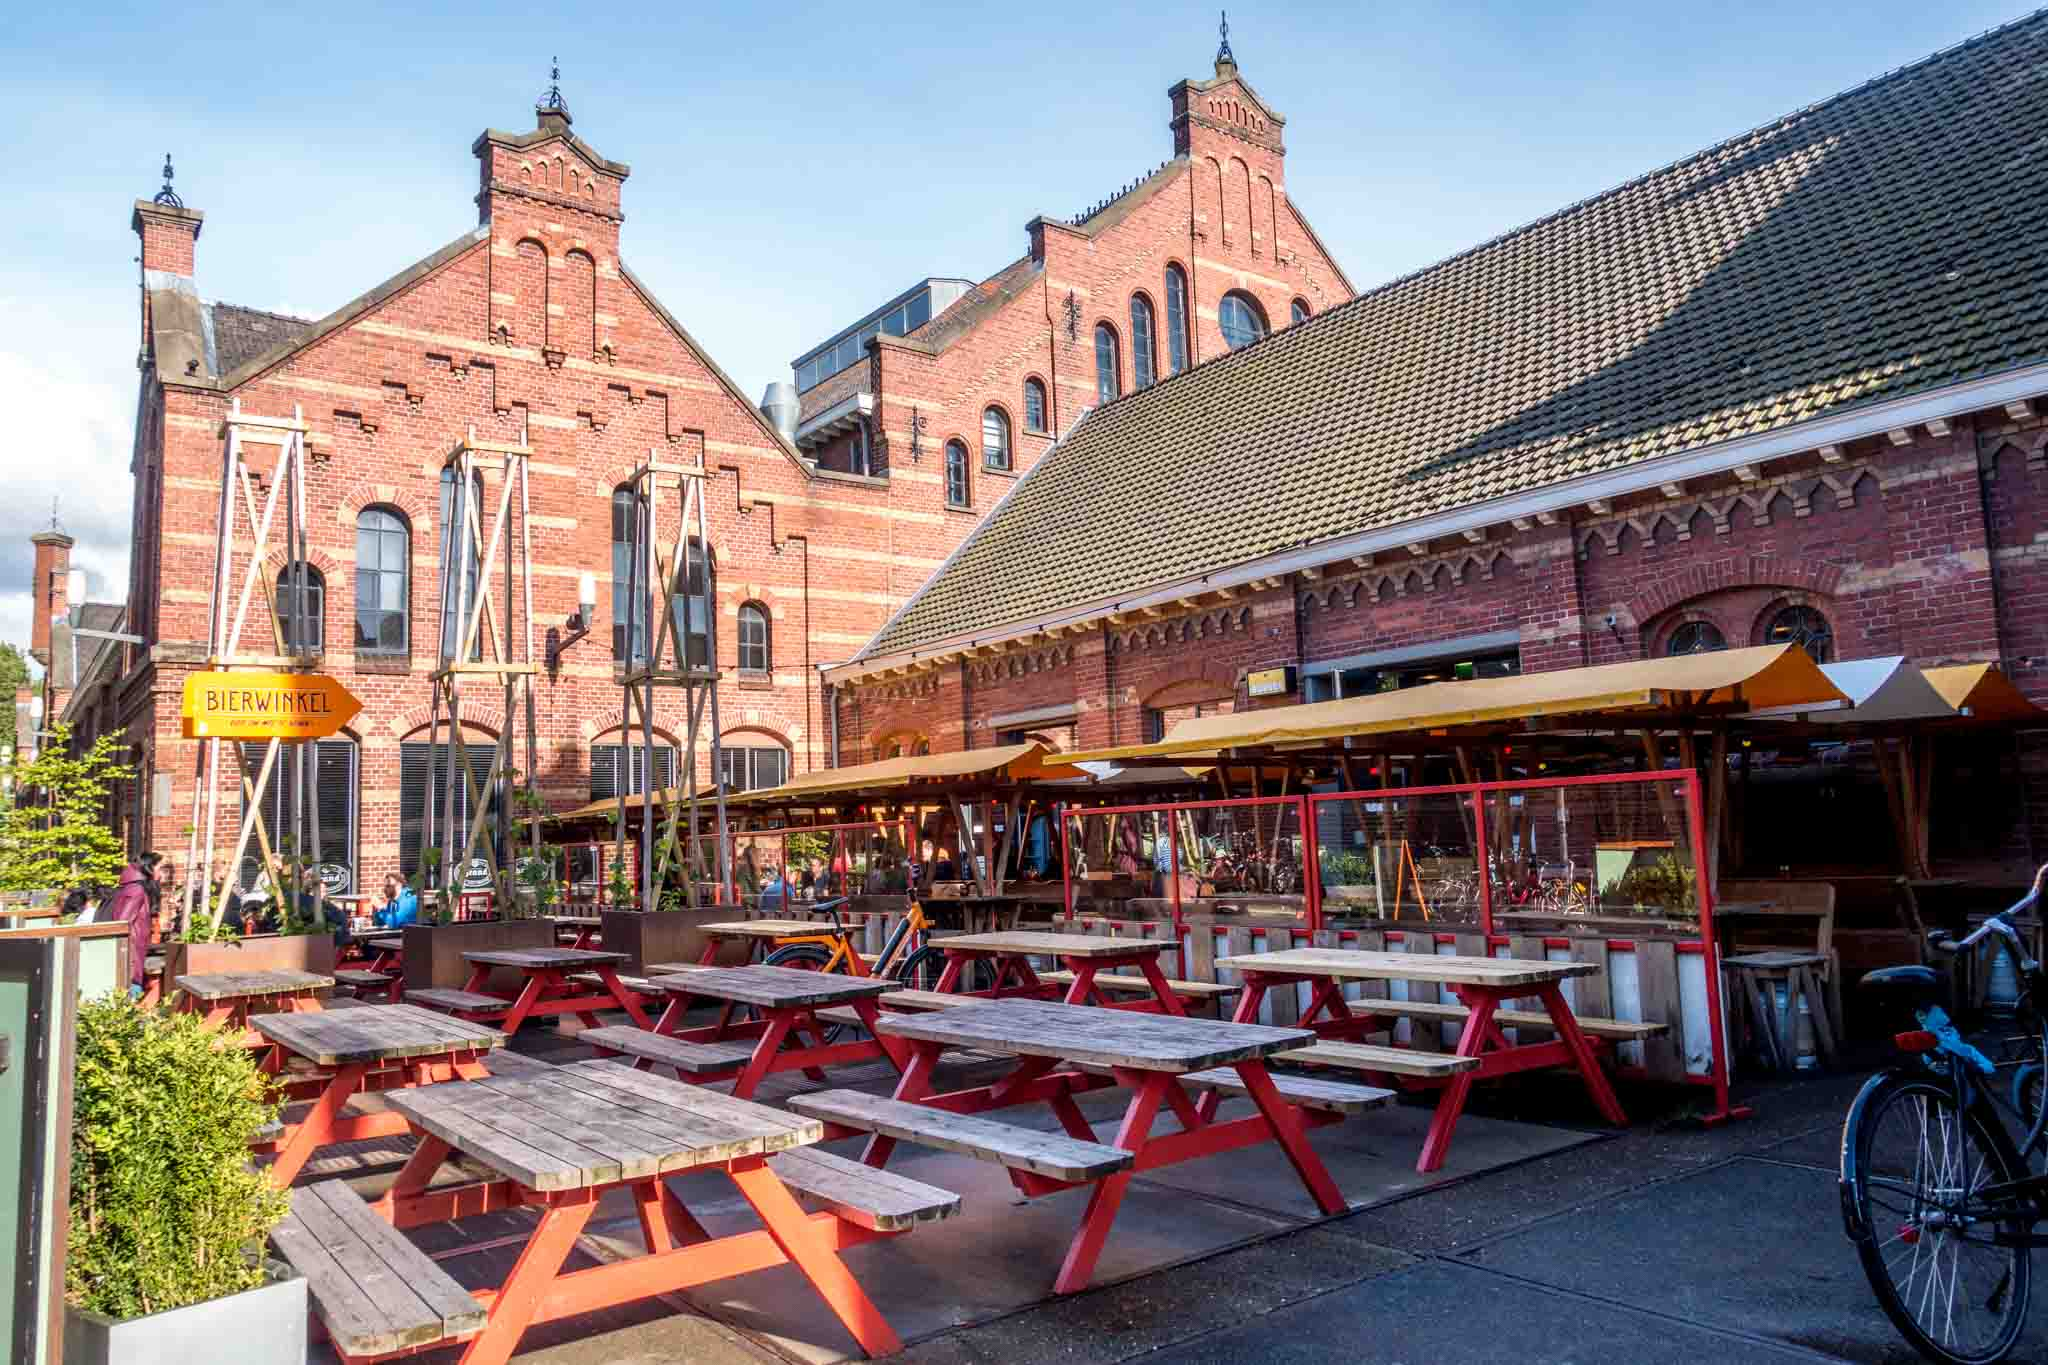 Troost Brewery outdoor seating and the red brick buildings of Westergasfabriek, one of the best spots in Amsterdam to enjoy the park and cafes